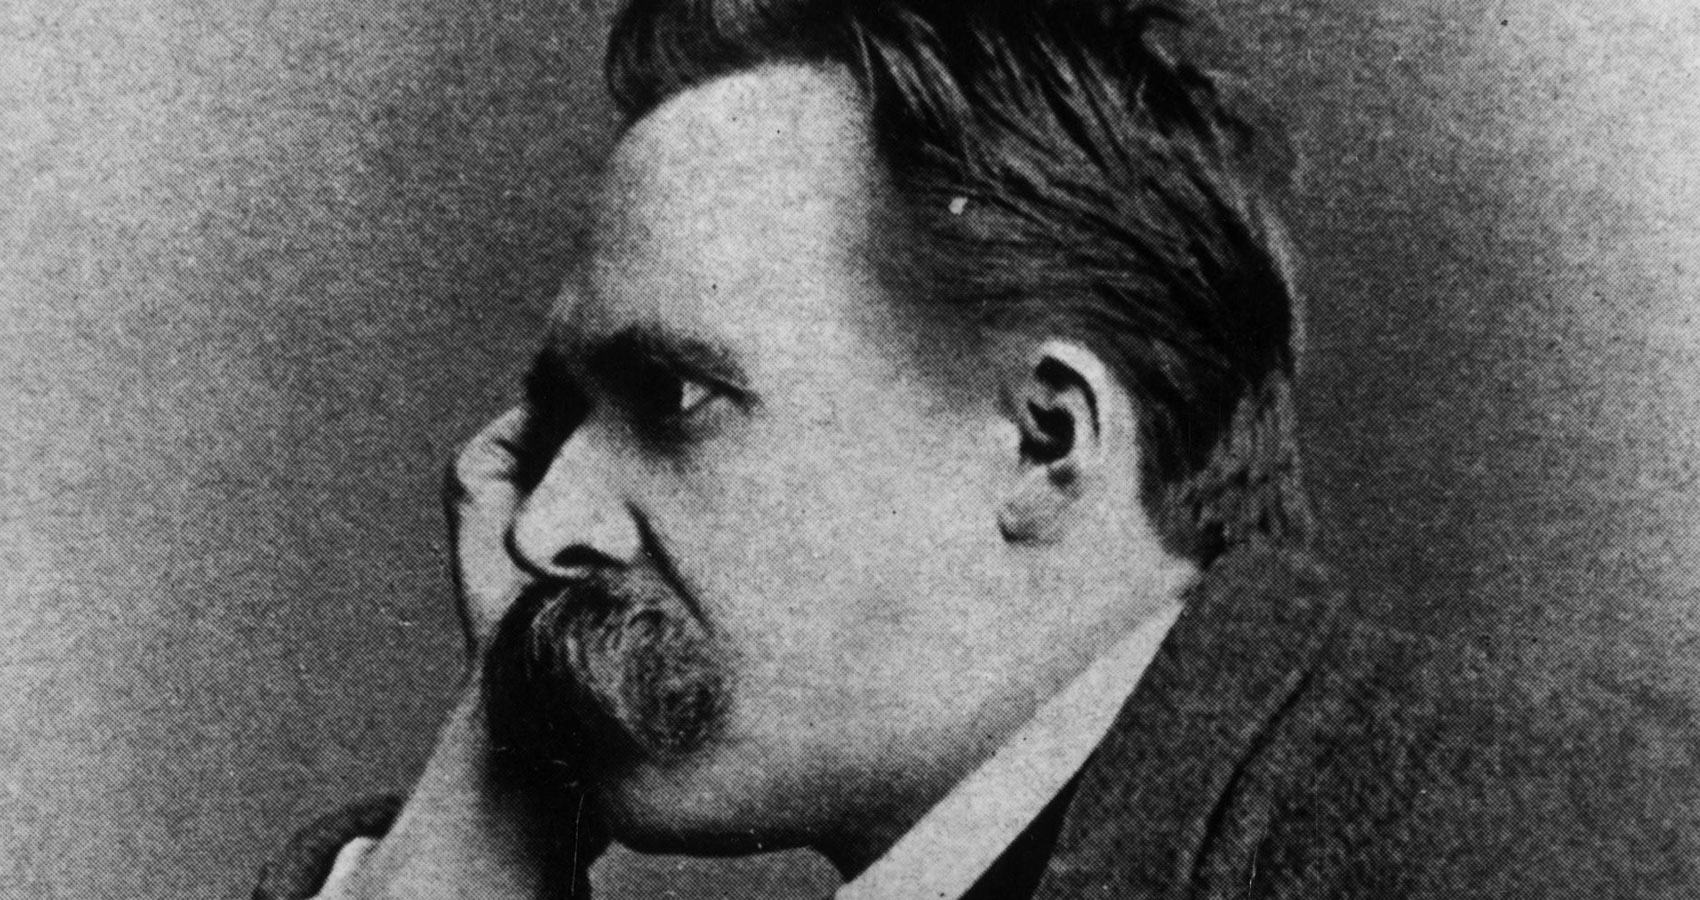 The political message of Nietzsche's 'God is dead' at Spillwords.com